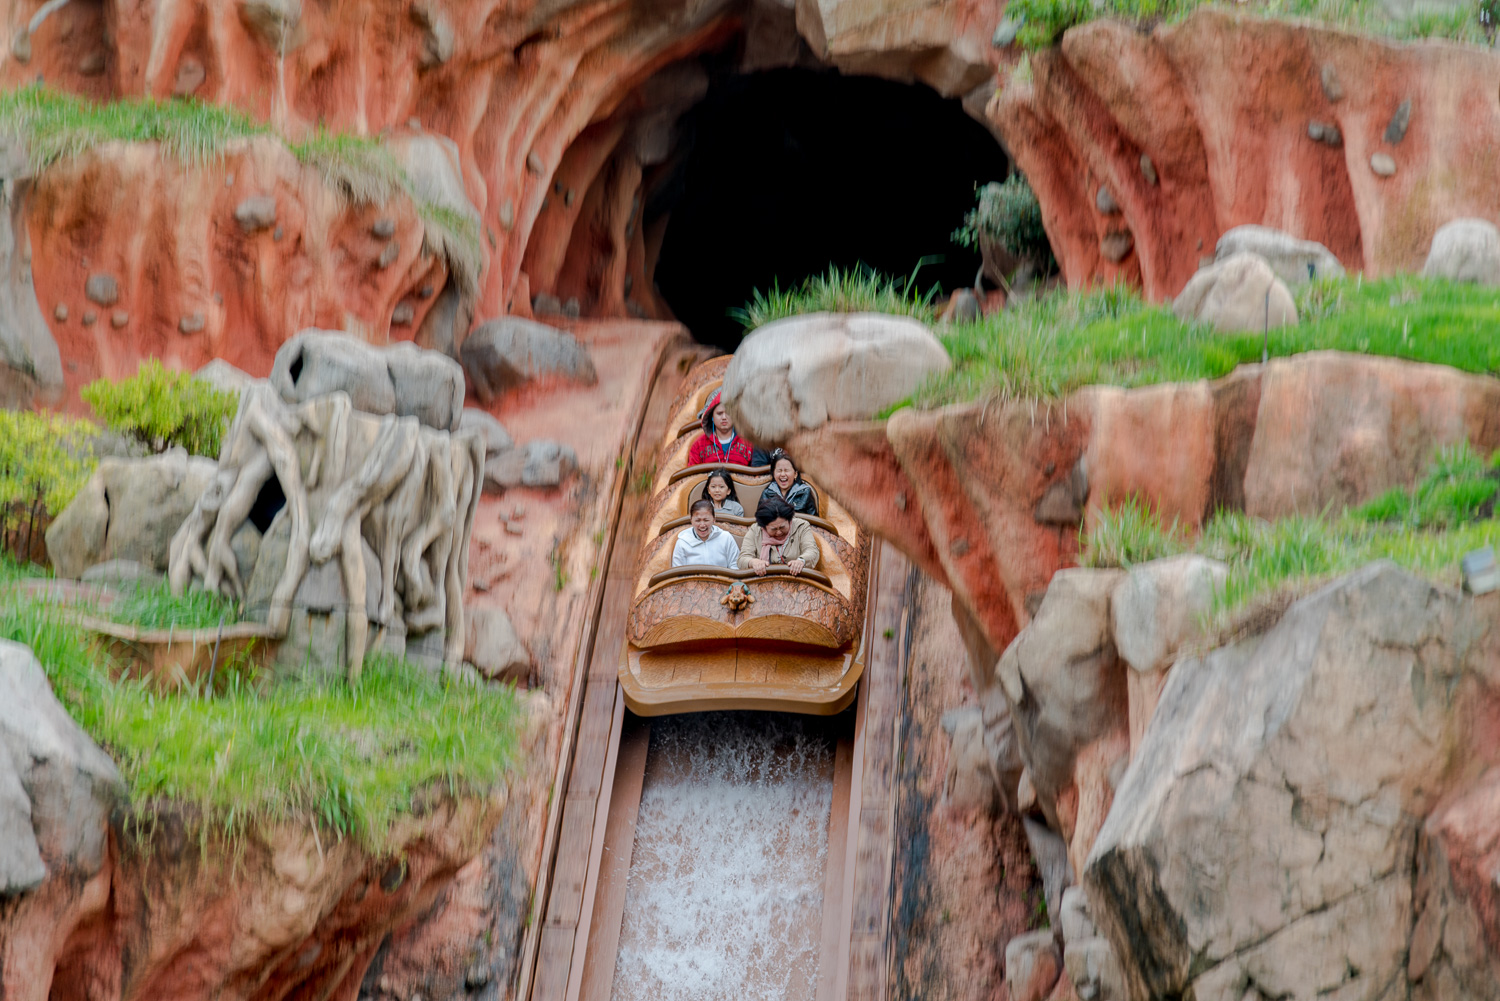 Do NOT miss this ride! I think we waited more than two hours just to go through Splash Mountain.